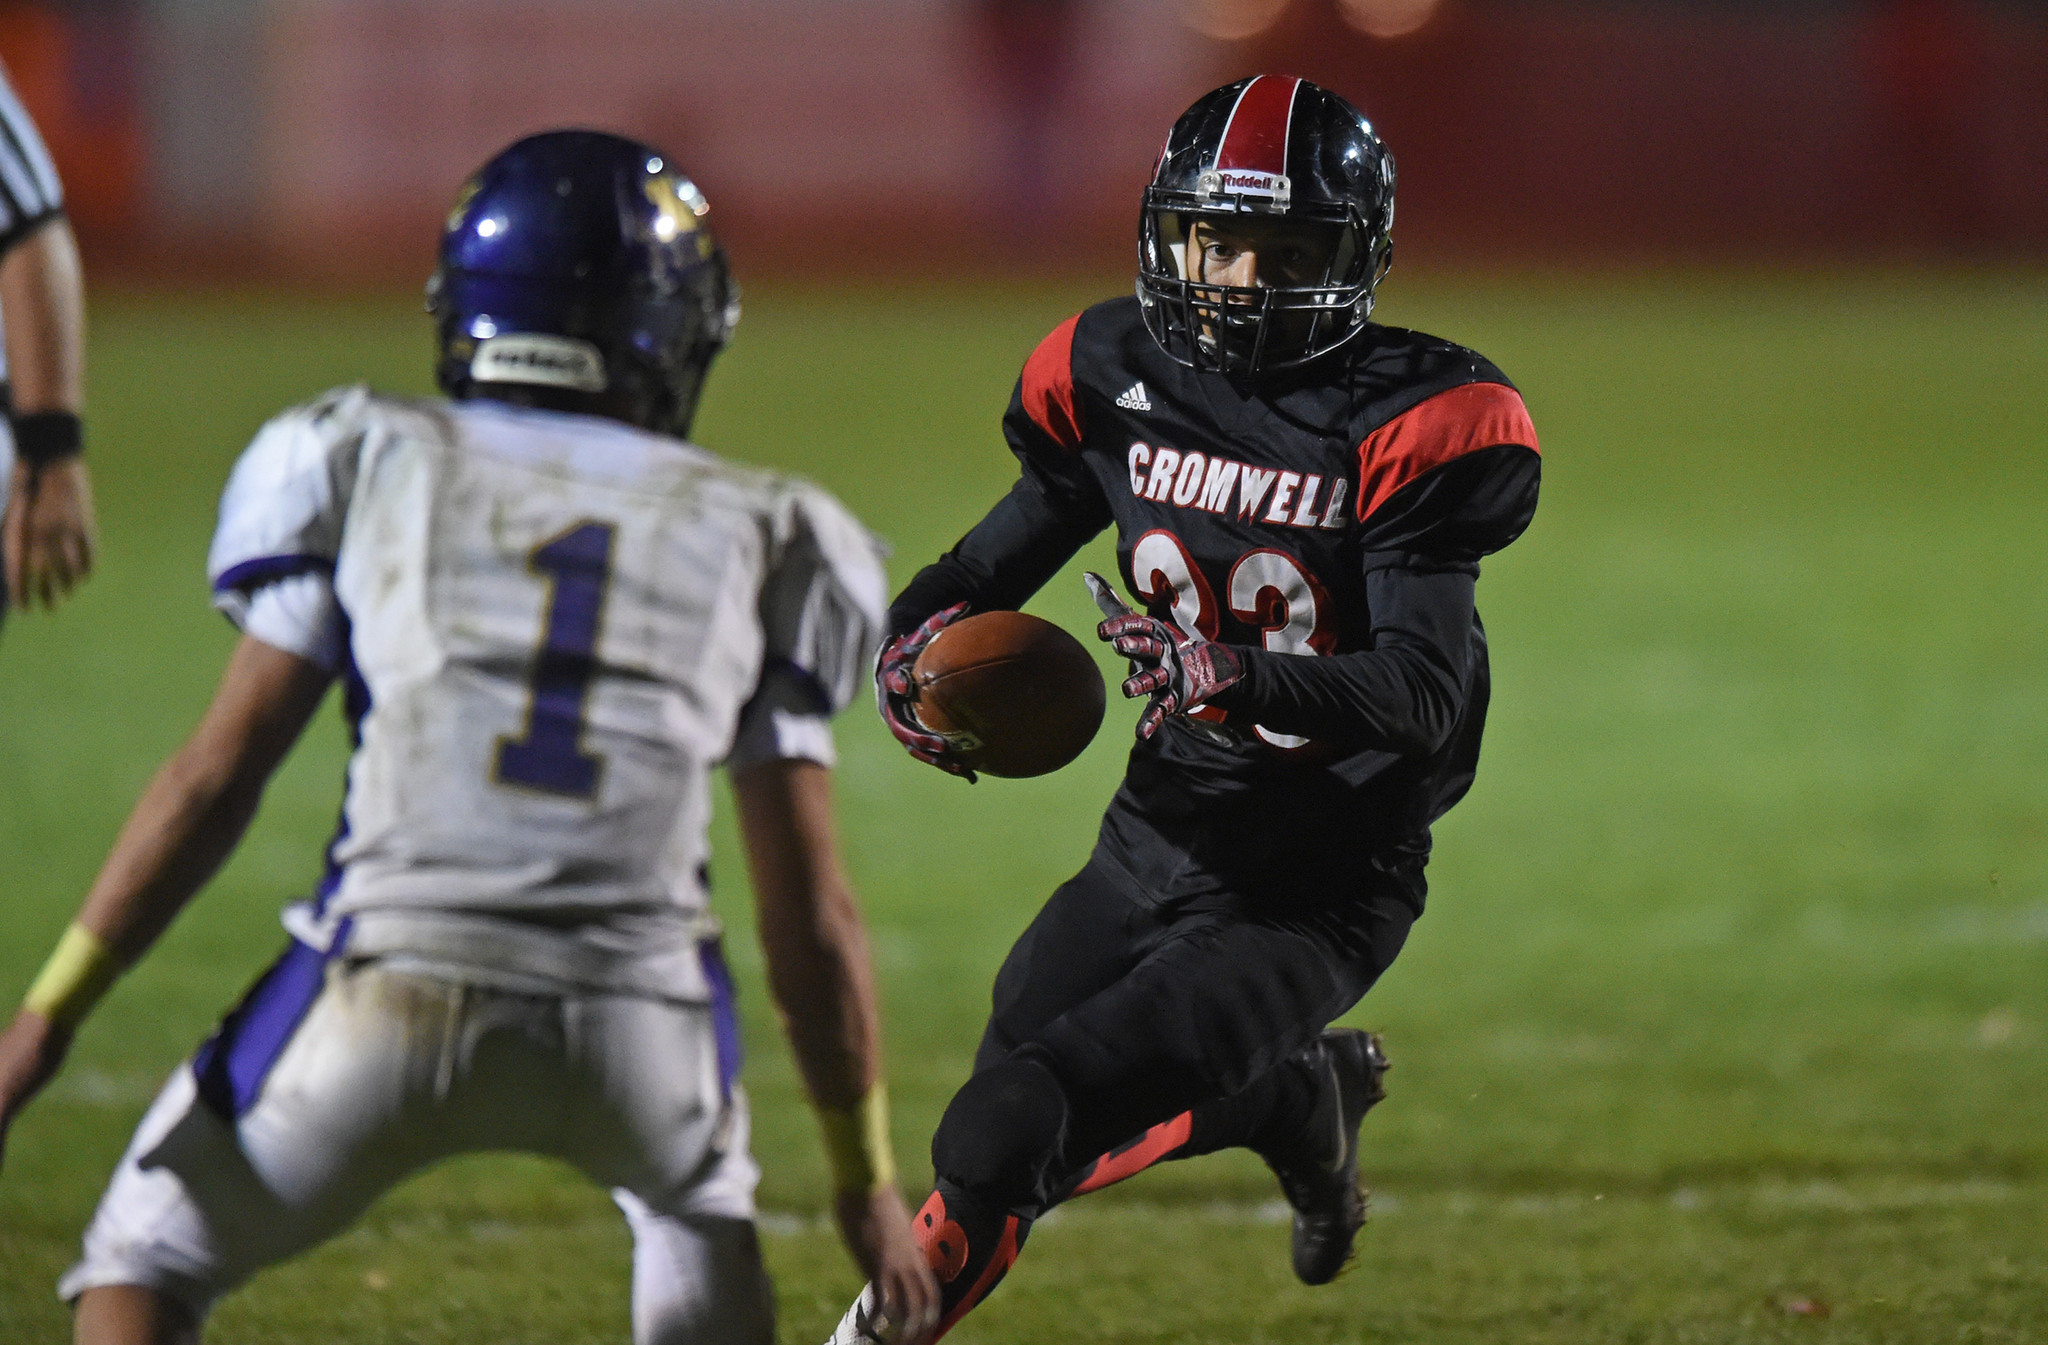 Franklin And Marshall Football >> State Football Recruiting List - Hartford Courant